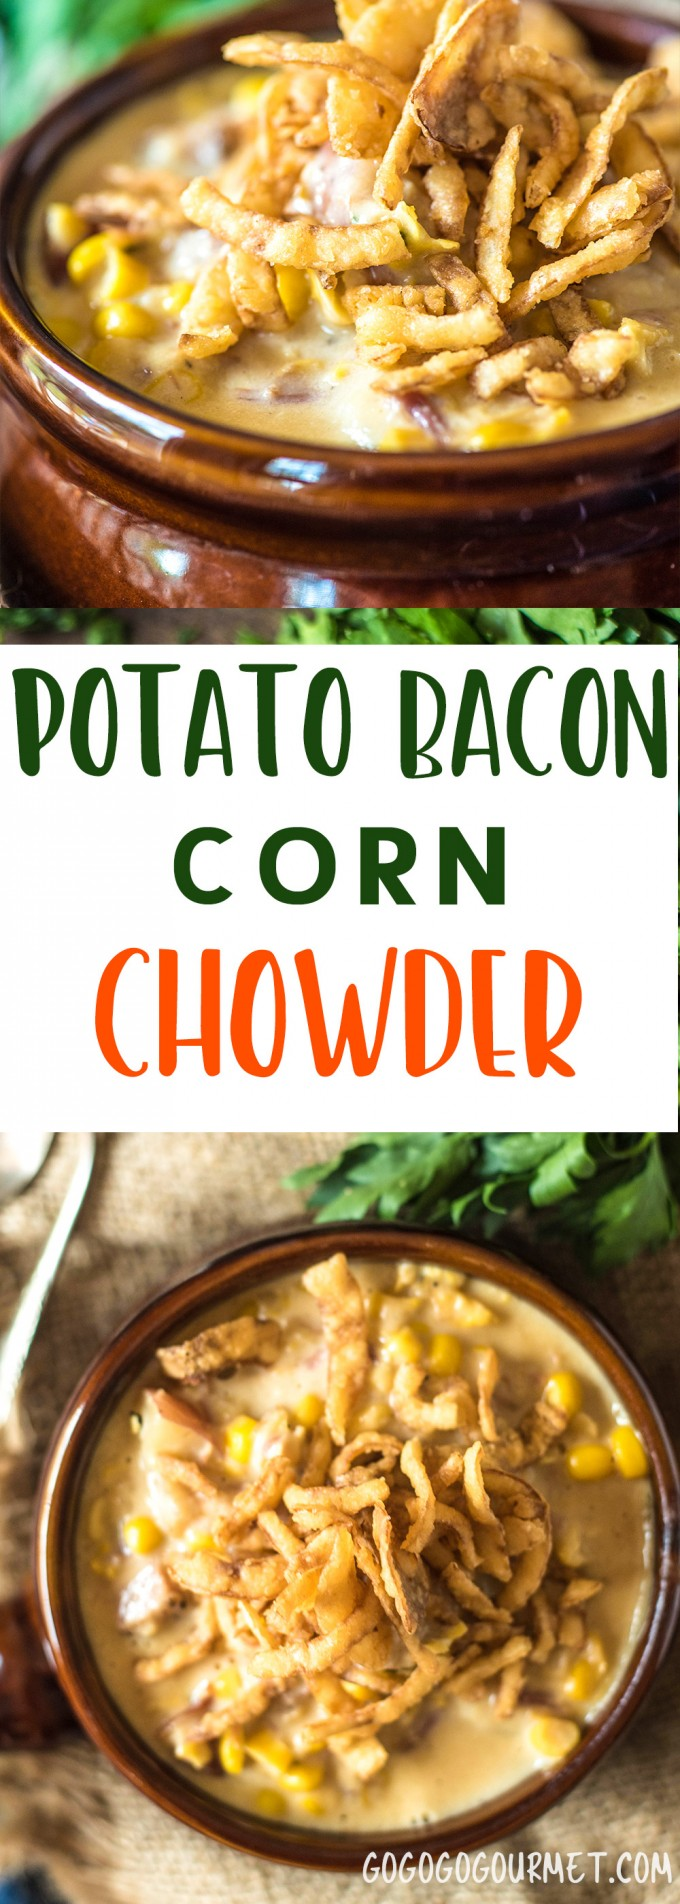 This Potato Corn Chowder with Bacon is the perfect soup to ease from summer into fall. Use summer's sweet corn to make this hearty soup!